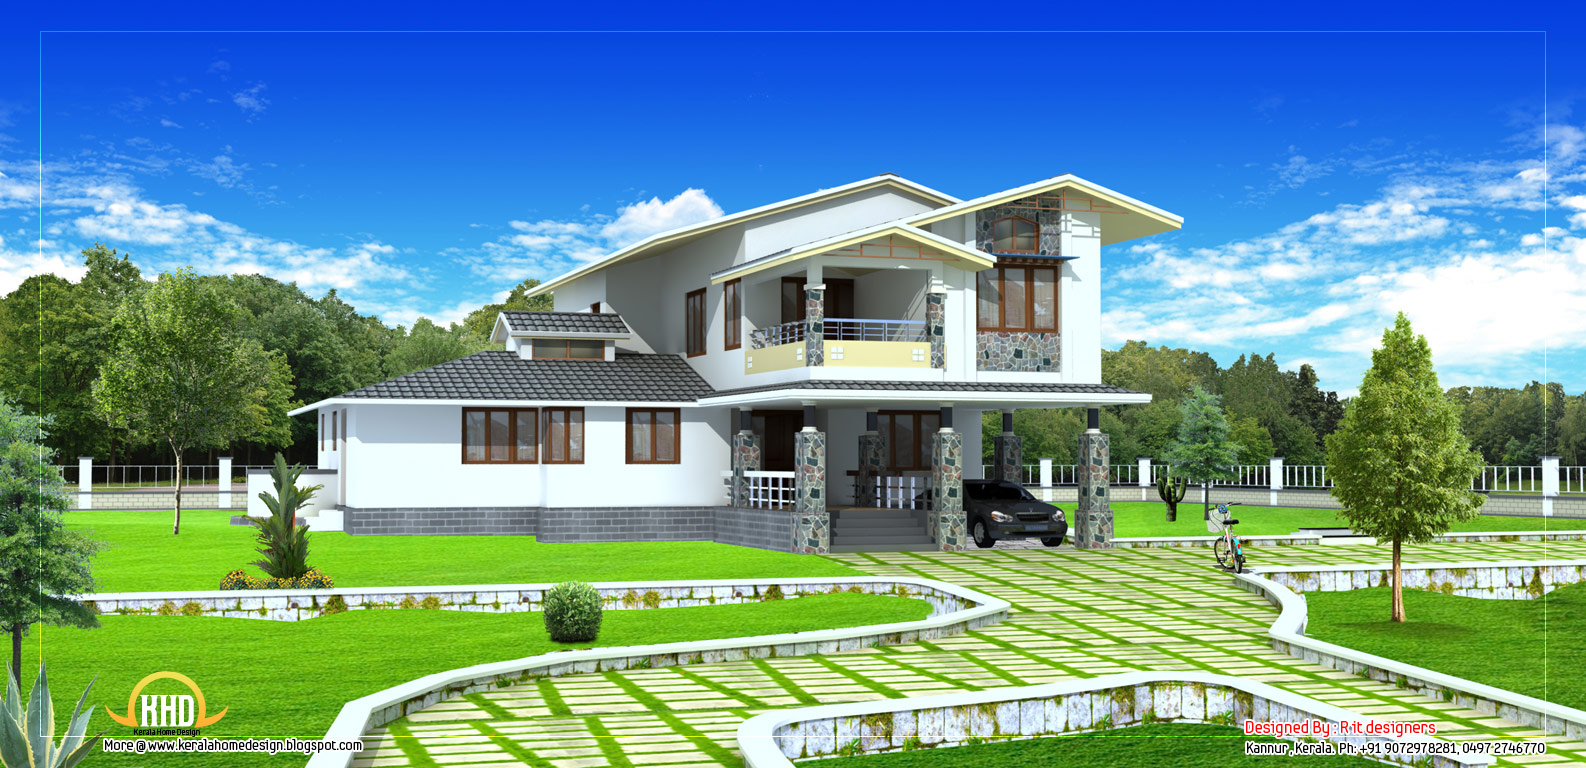 2 Story House Plan 2490 Sq Ft Home Appliance